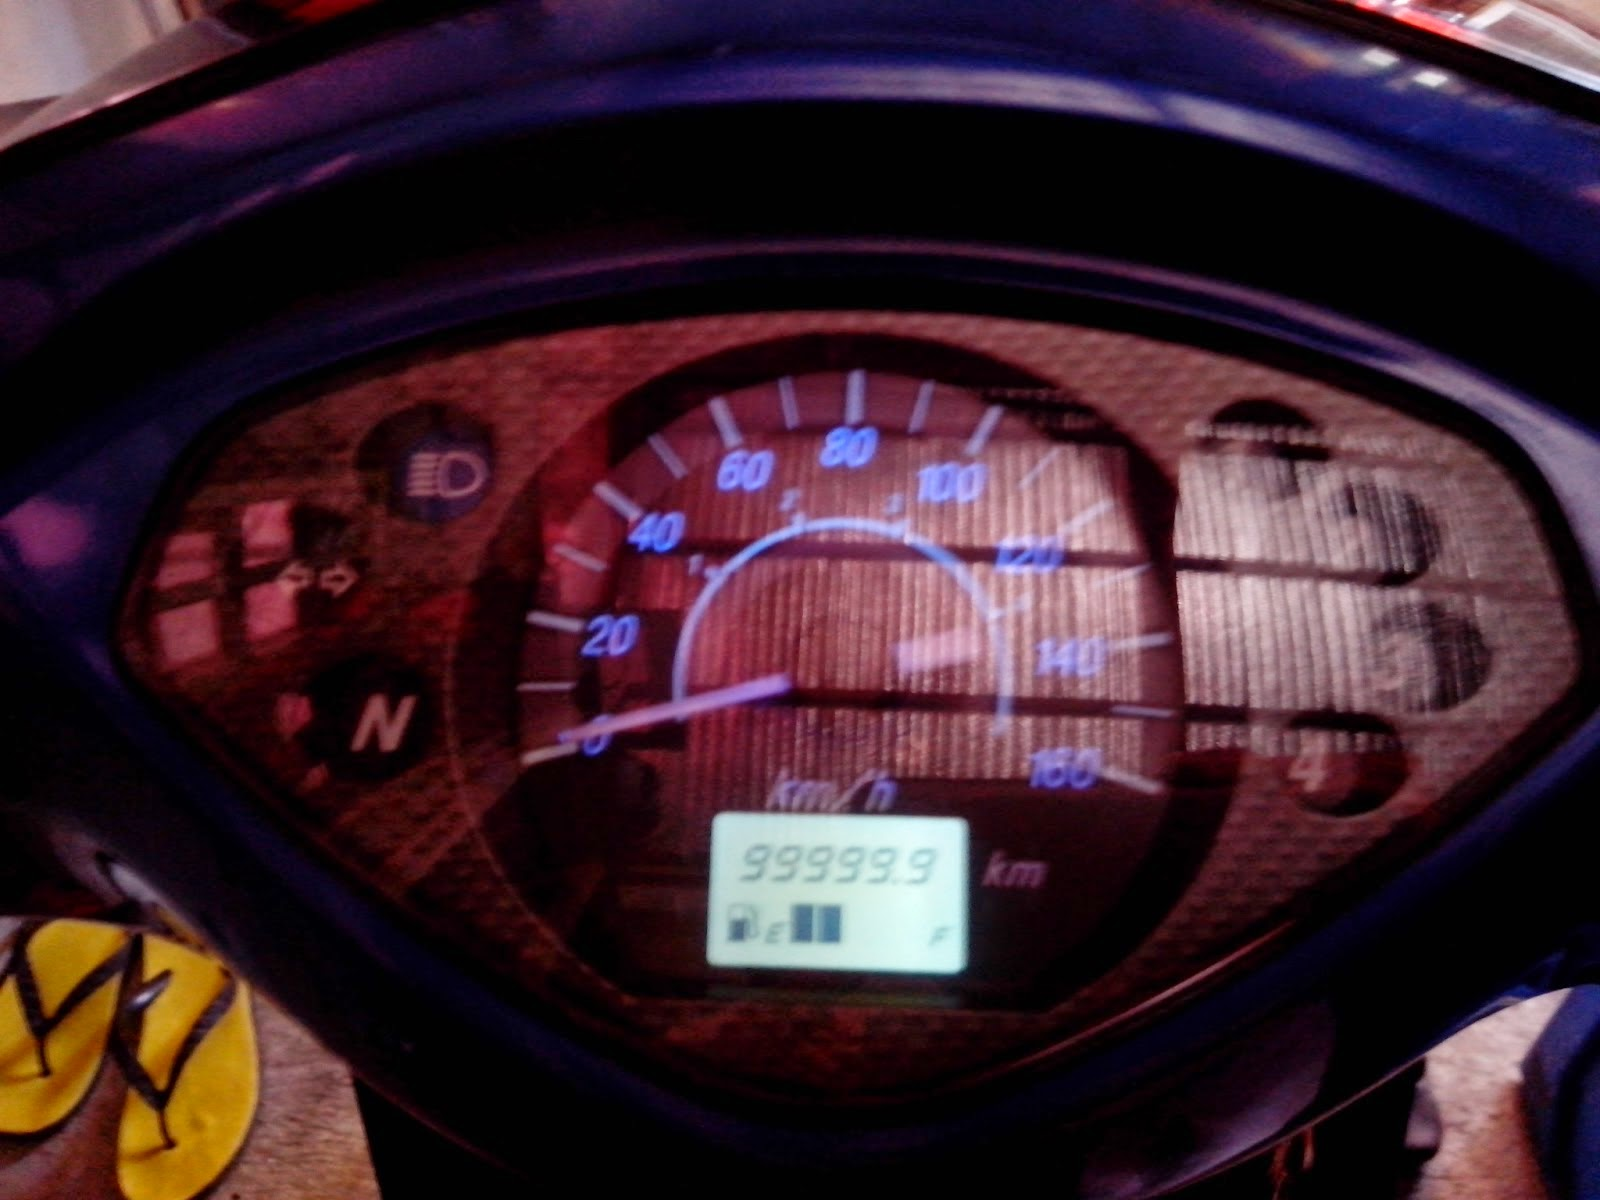 Yamaha Digital Tachometer Manual Outboard Gauges Wiring Diagram Fuel Gauge Dsiplay Techy At Day Blogger Noon 1600x1200